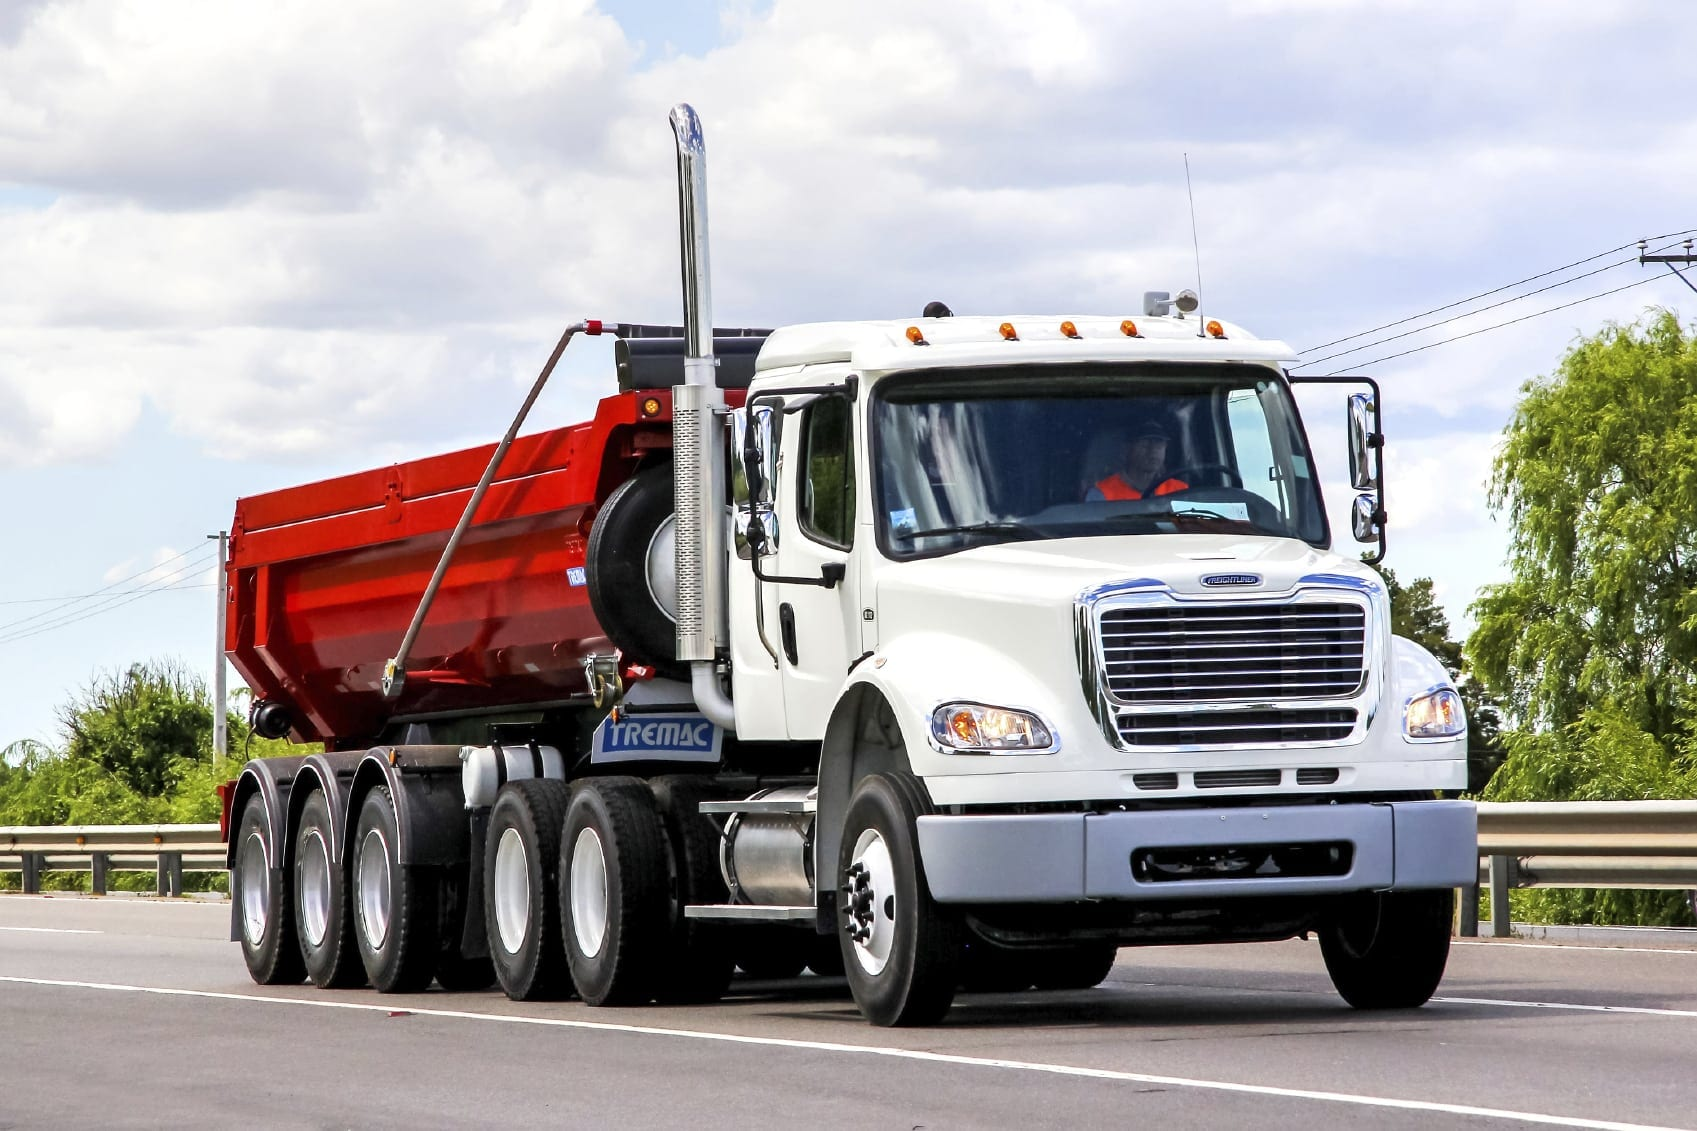 Large Semi-truck Driving On A Rural Road Stock Photo